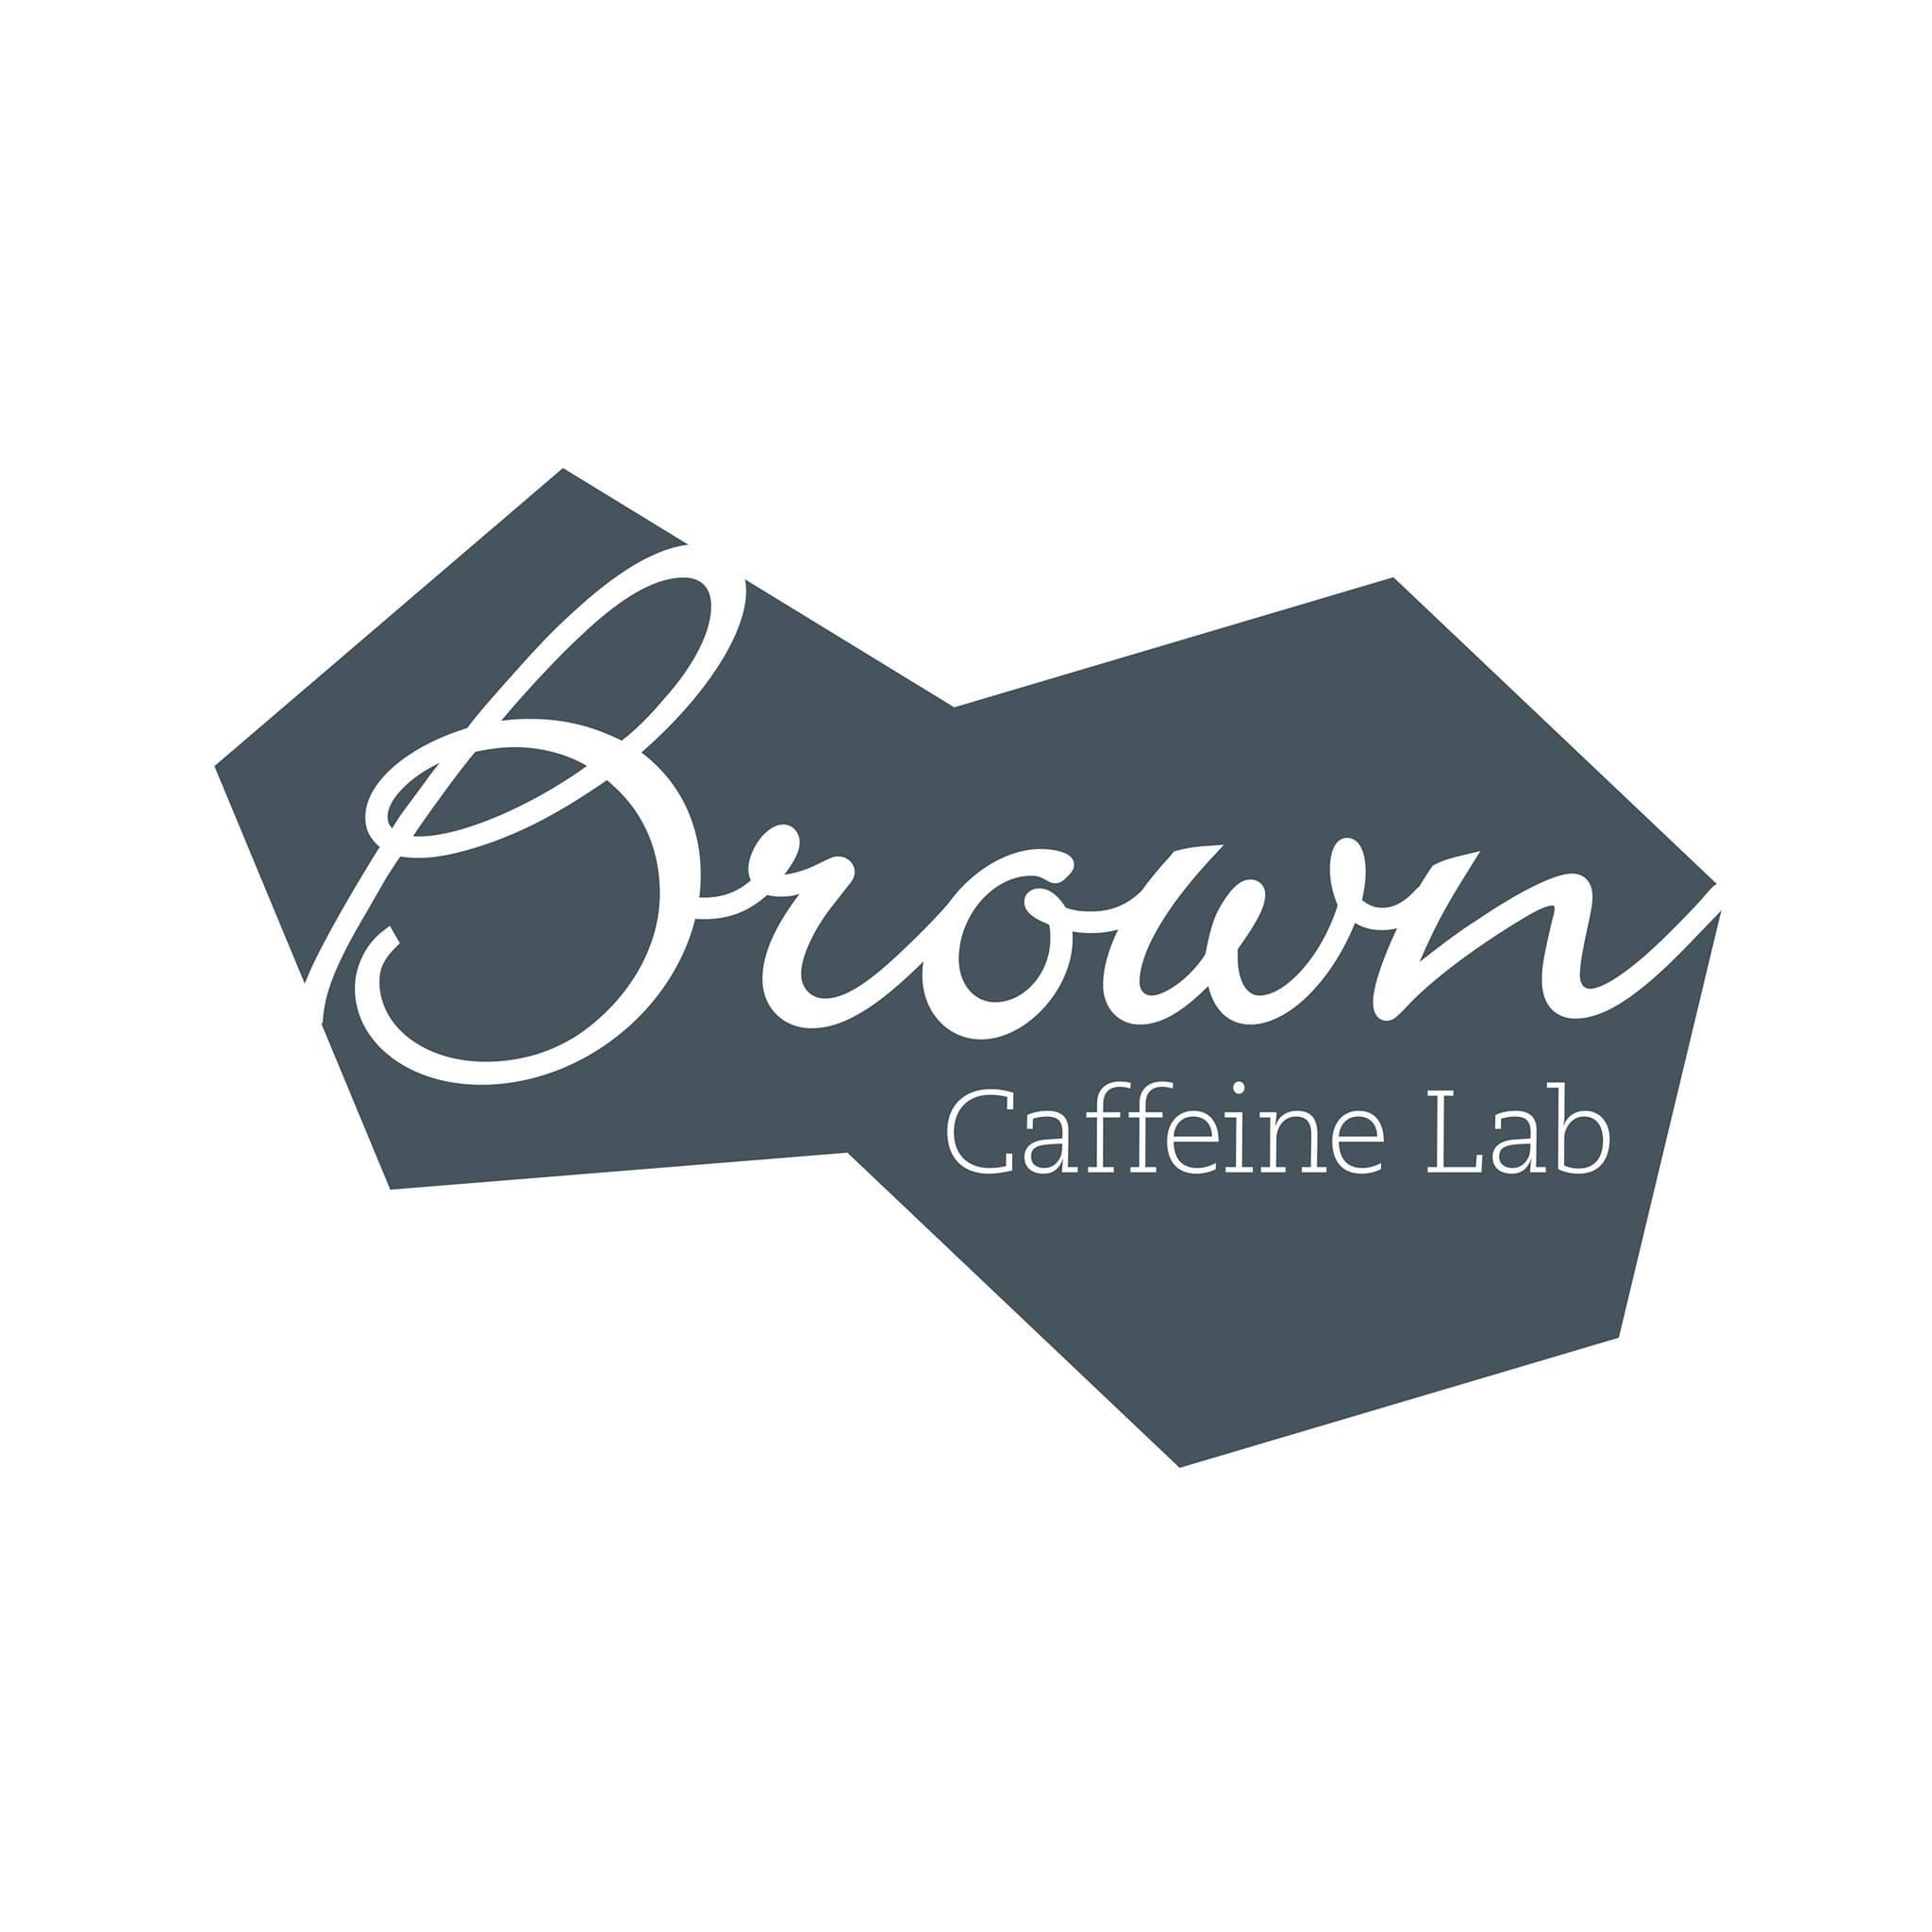 Brown Caffeine Lab